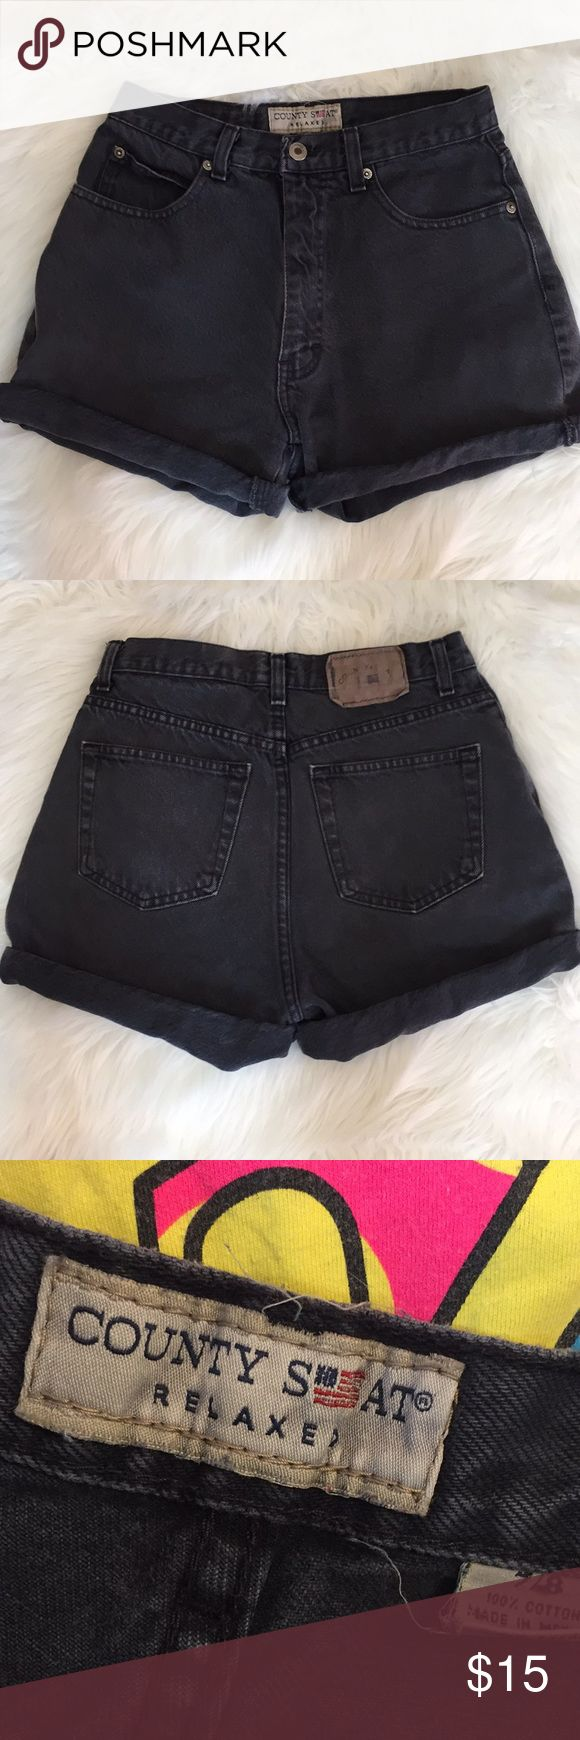 County Seat Black Denim Shorts Size 7/8. Please ask any questions. Thank you for looking. County Seat Shorts Jean Shorts